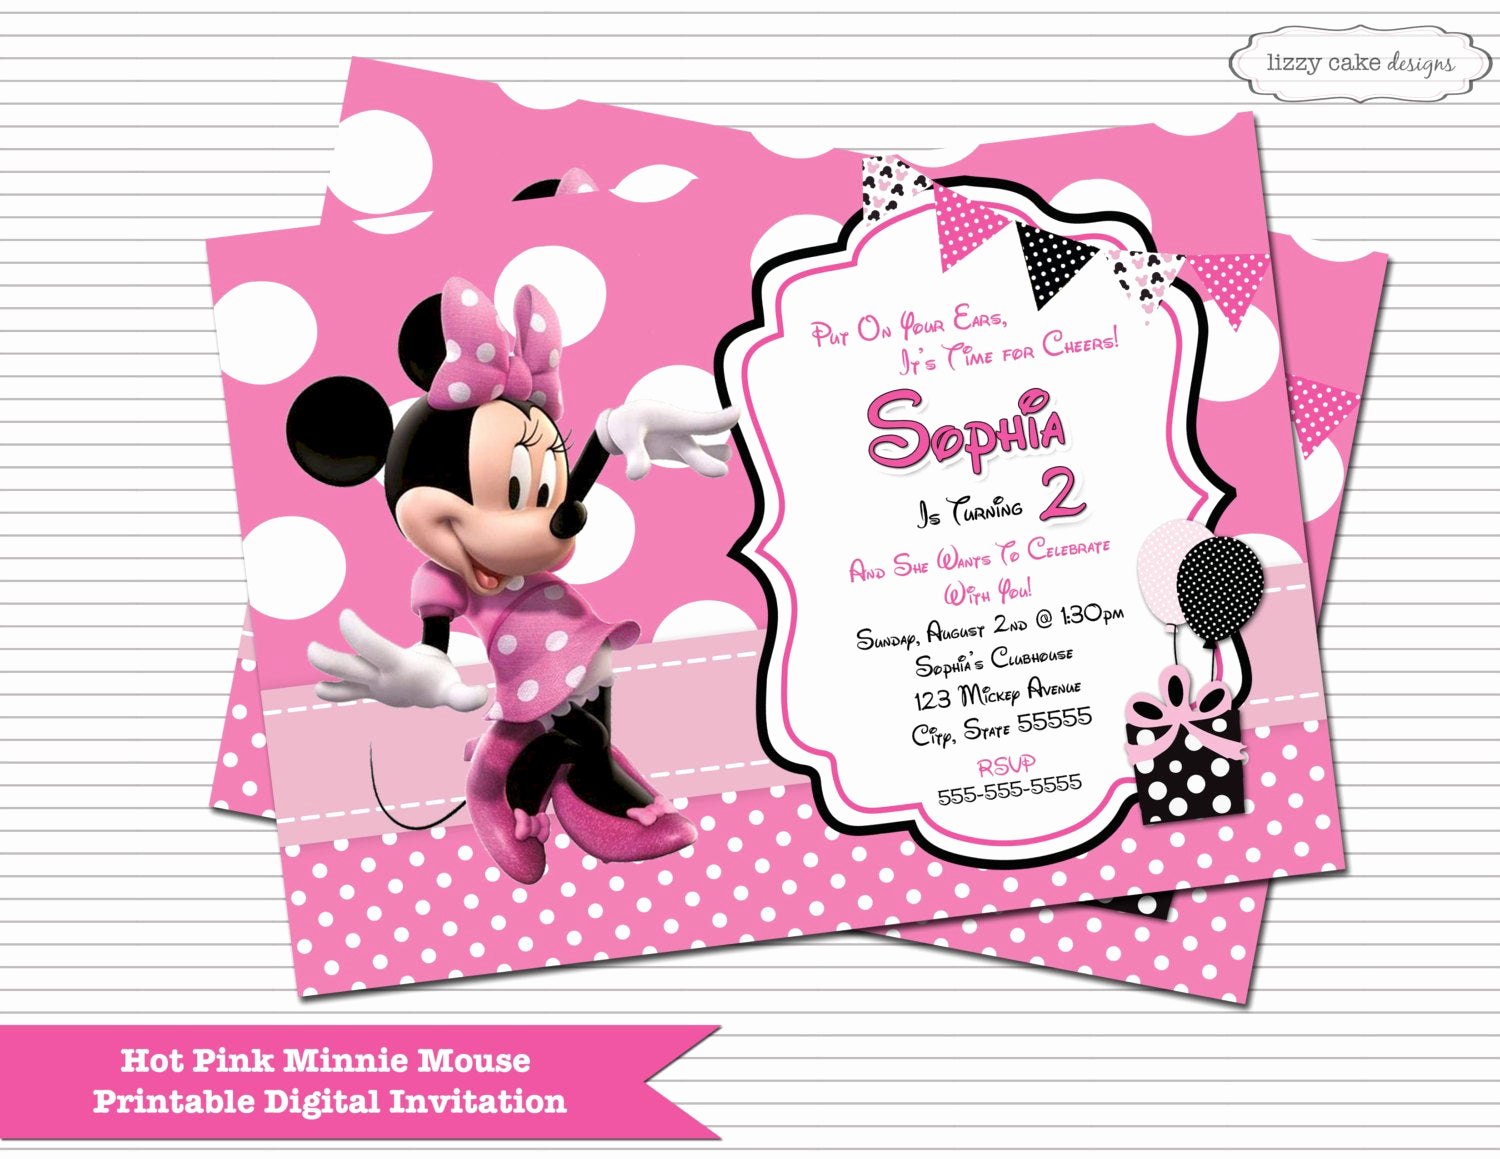 Minnie Mouse Birthday Invitation Wording Beautiful Hot Pink Minnie Mouse Birthday Invitation Minnie Mouse